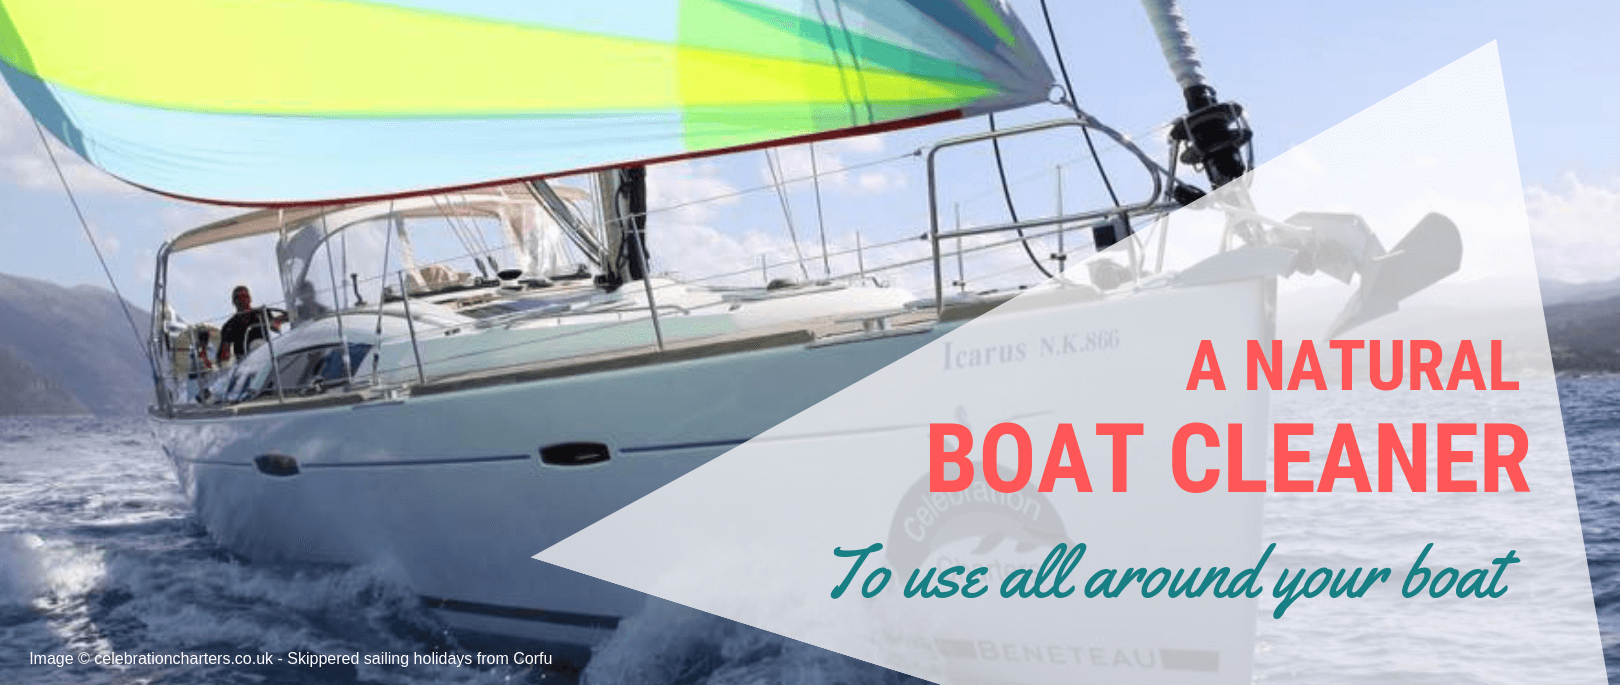 A Beneteau sailing boat in full sail with graphic saying a natural boat cleaner to use all around your boat